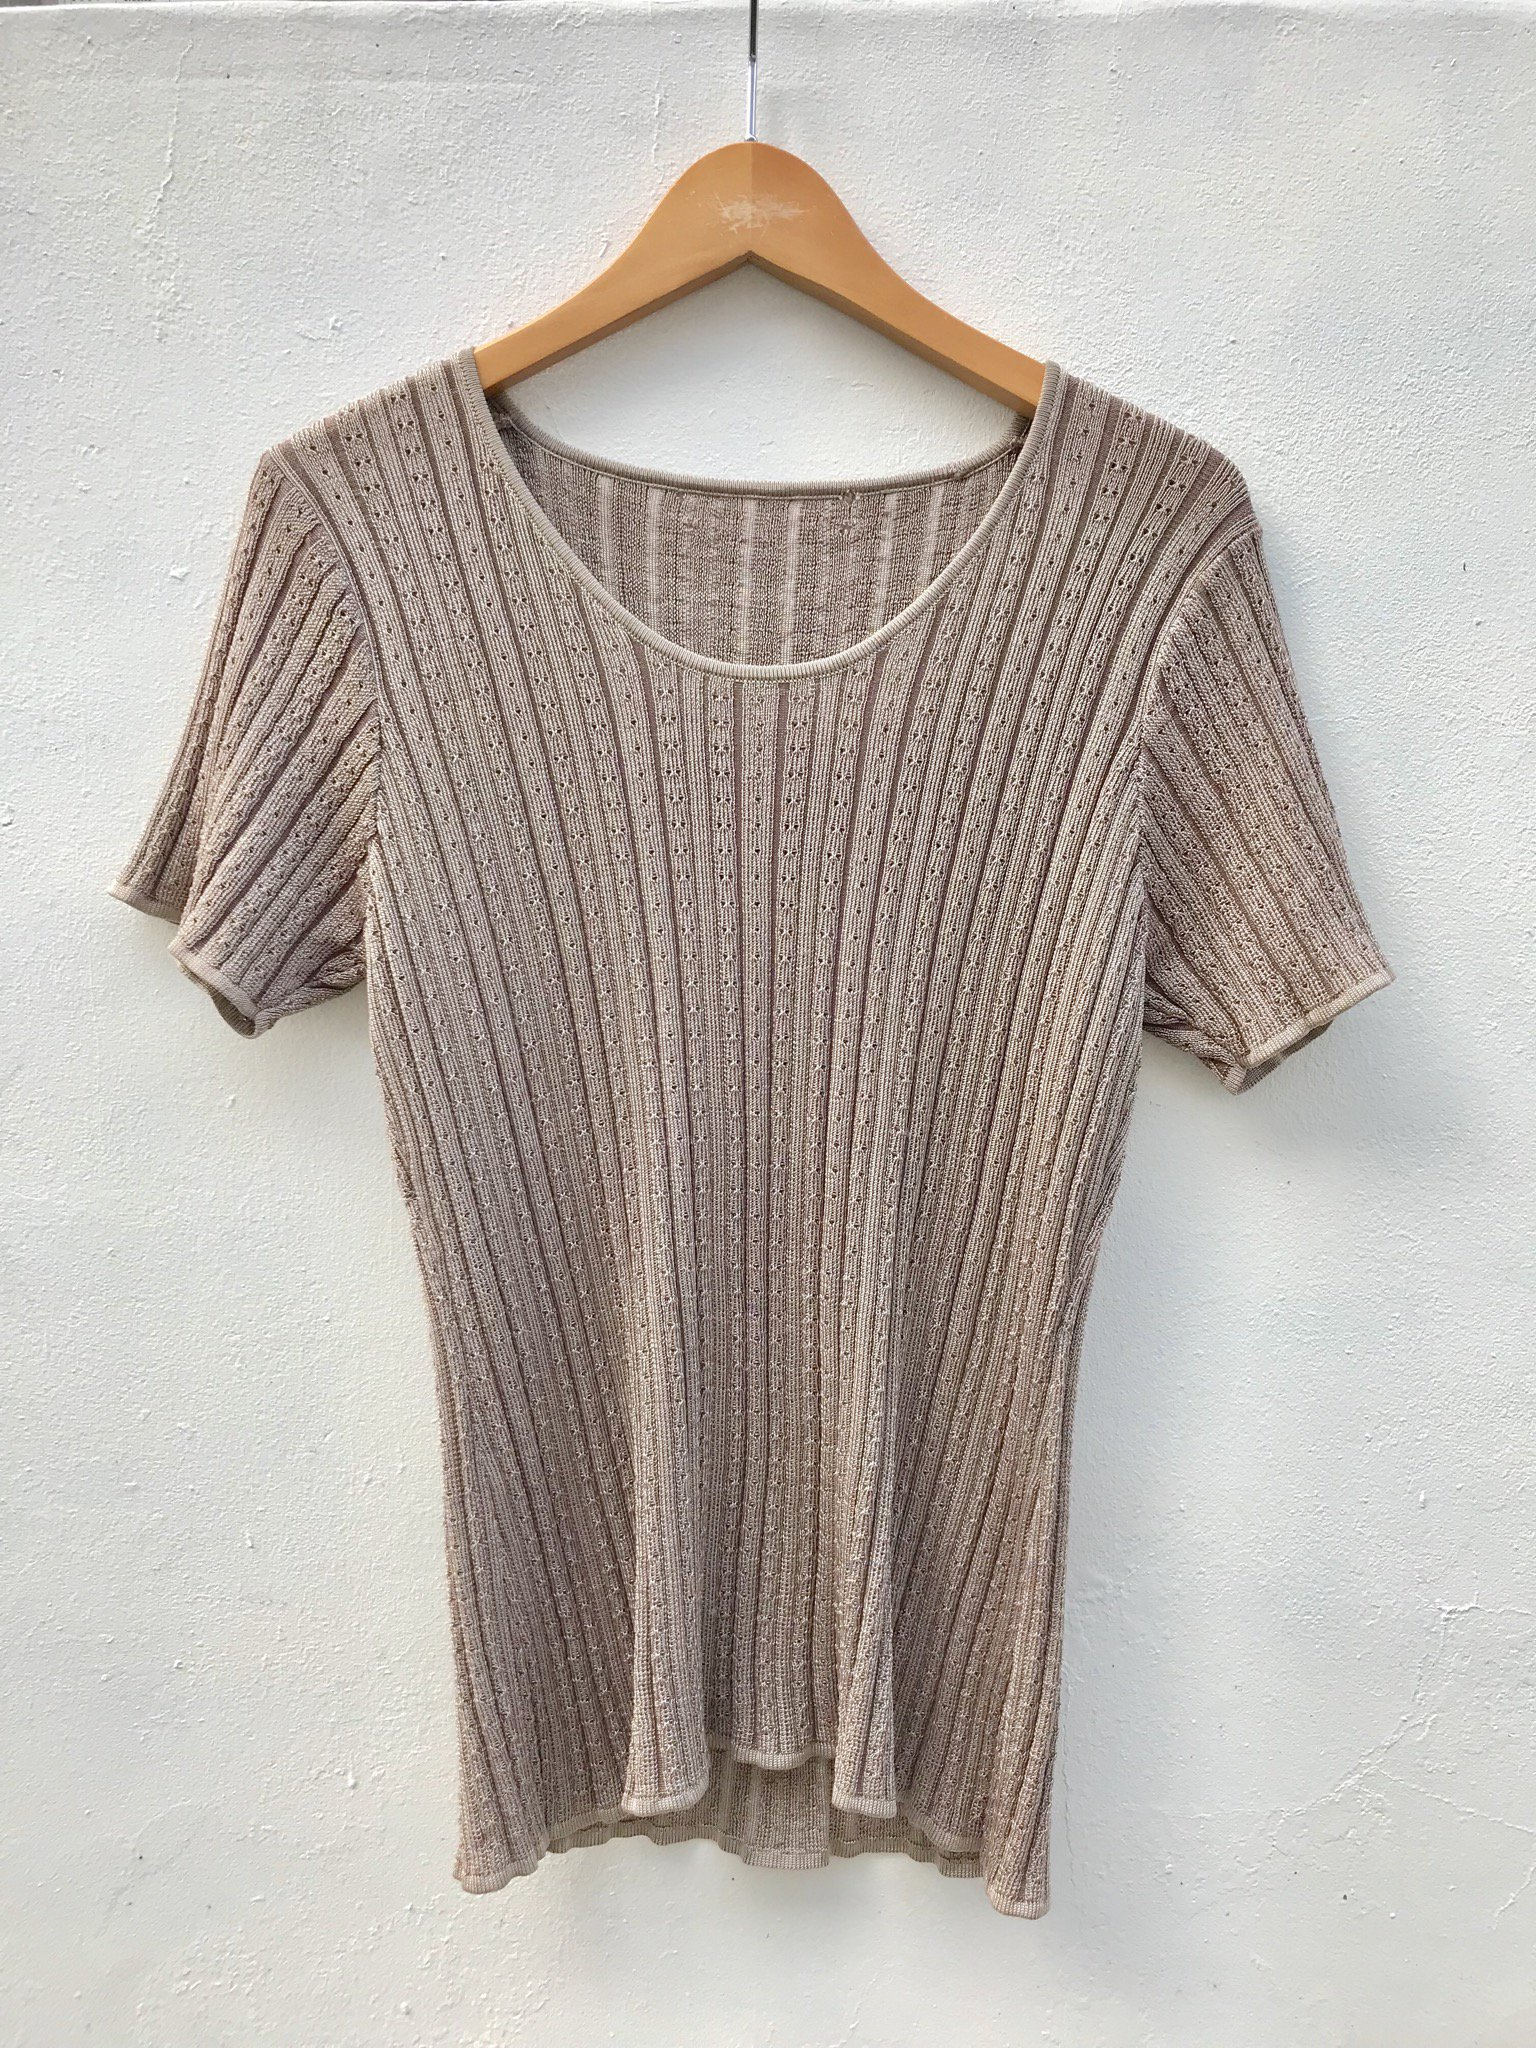 brown knit tee